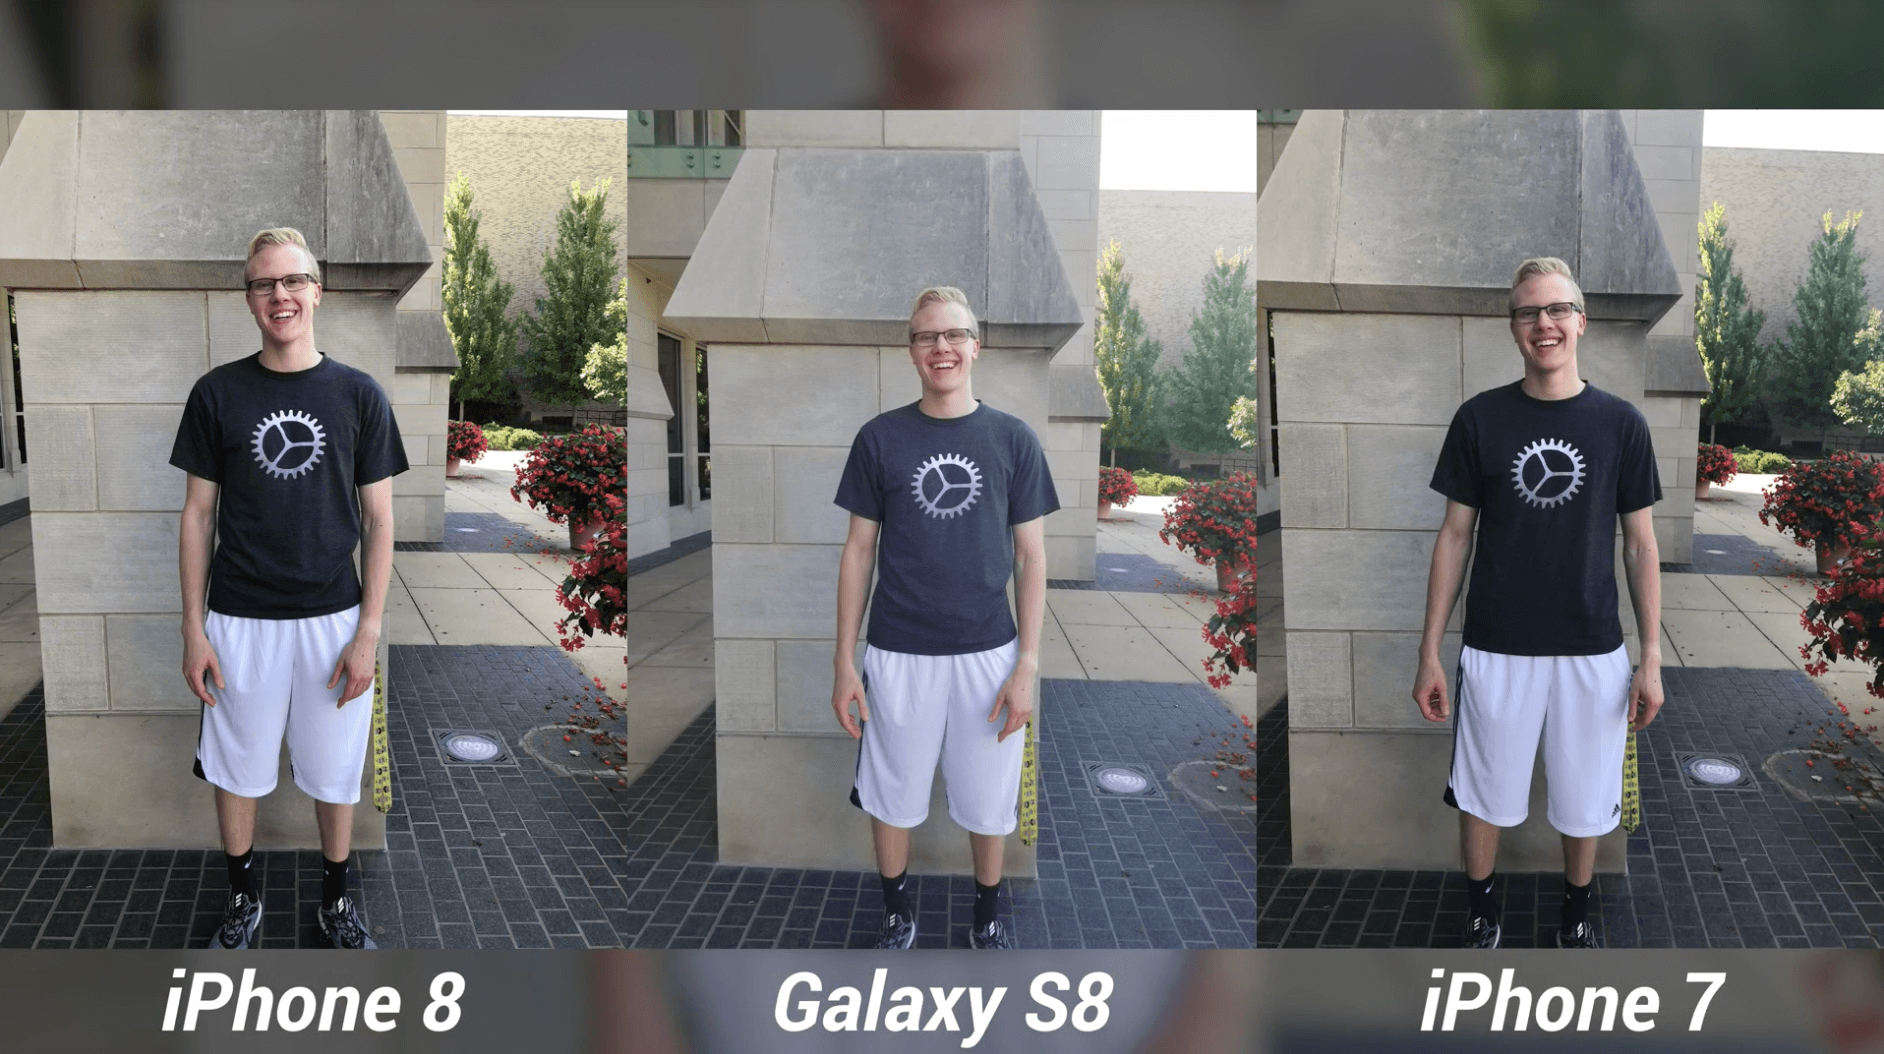 iPhone 8 Camera Test vs Galaxy S8 & iPhone 7-8